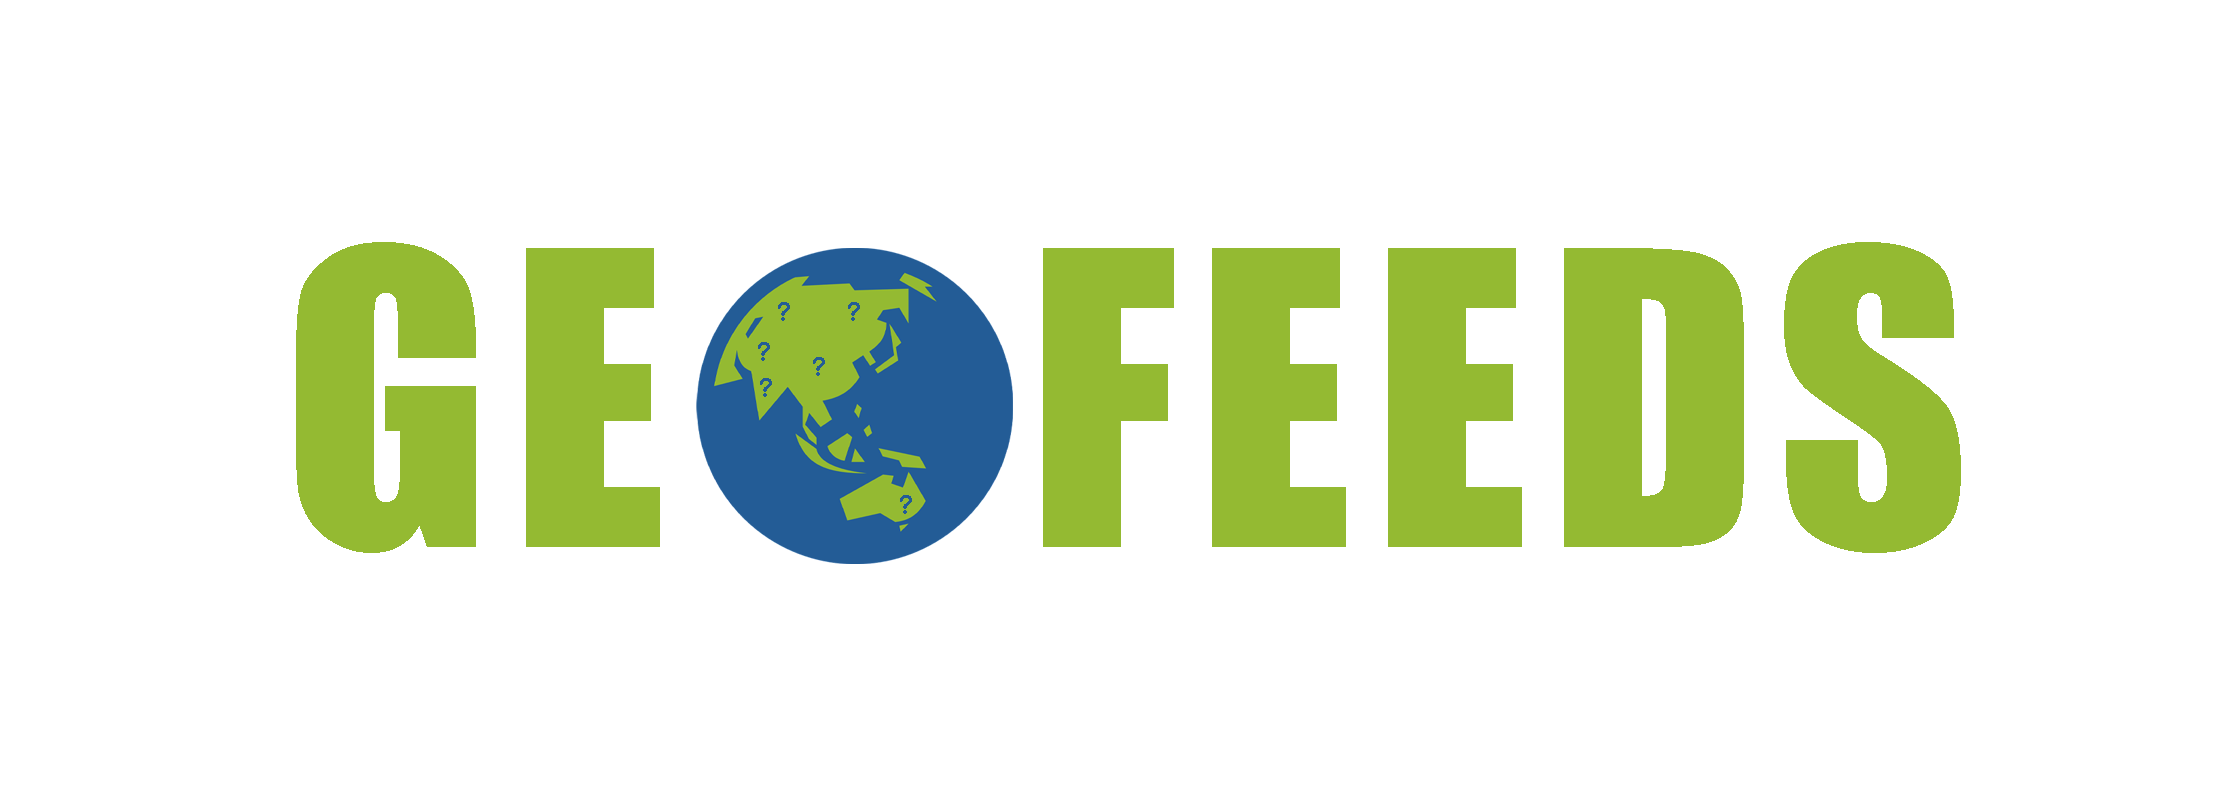 Geofeeds and shepherding: Where is that network?